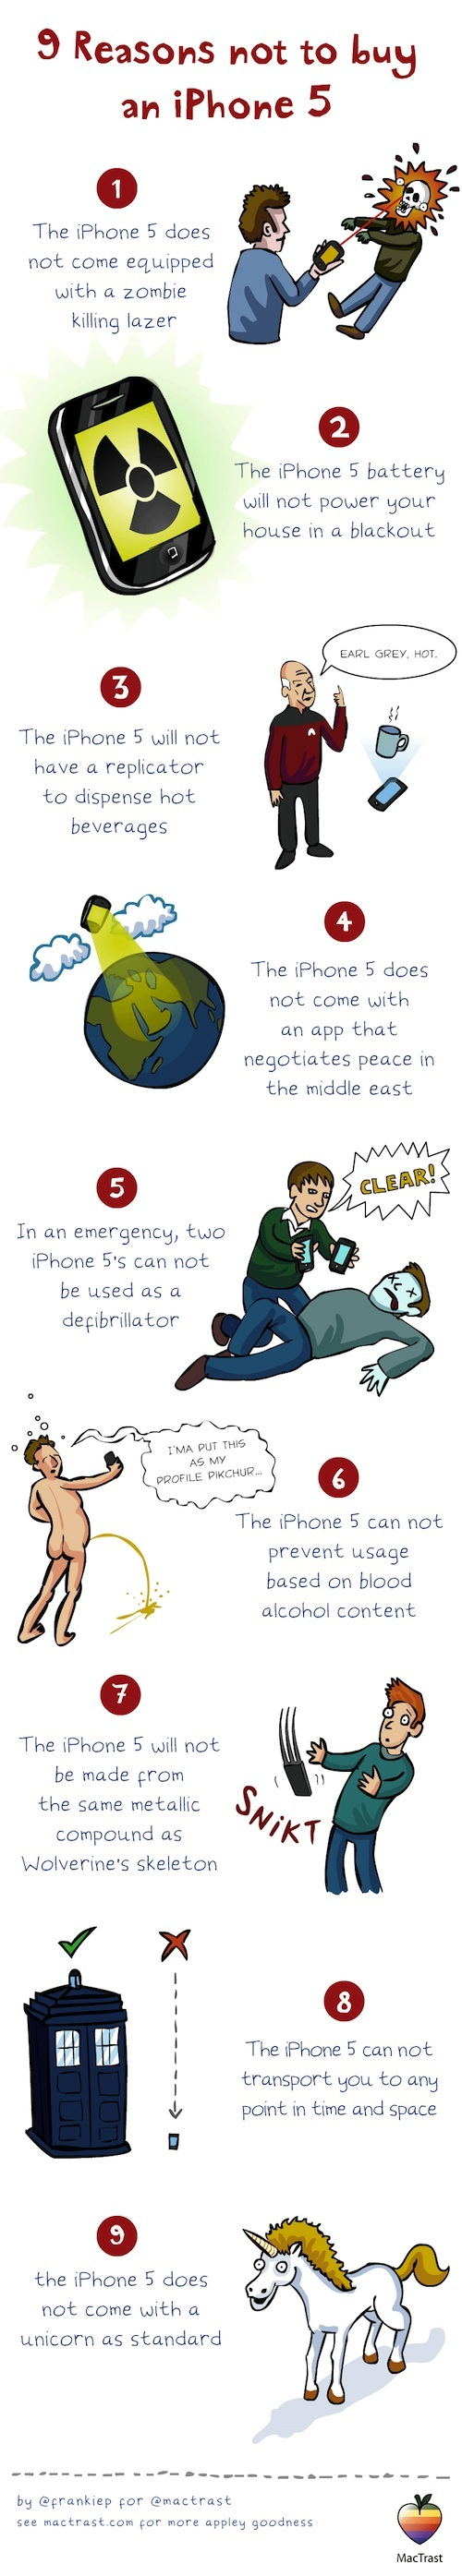 9 Reasons Not To Buy iPhone 5 [INFOGRAPHIC]